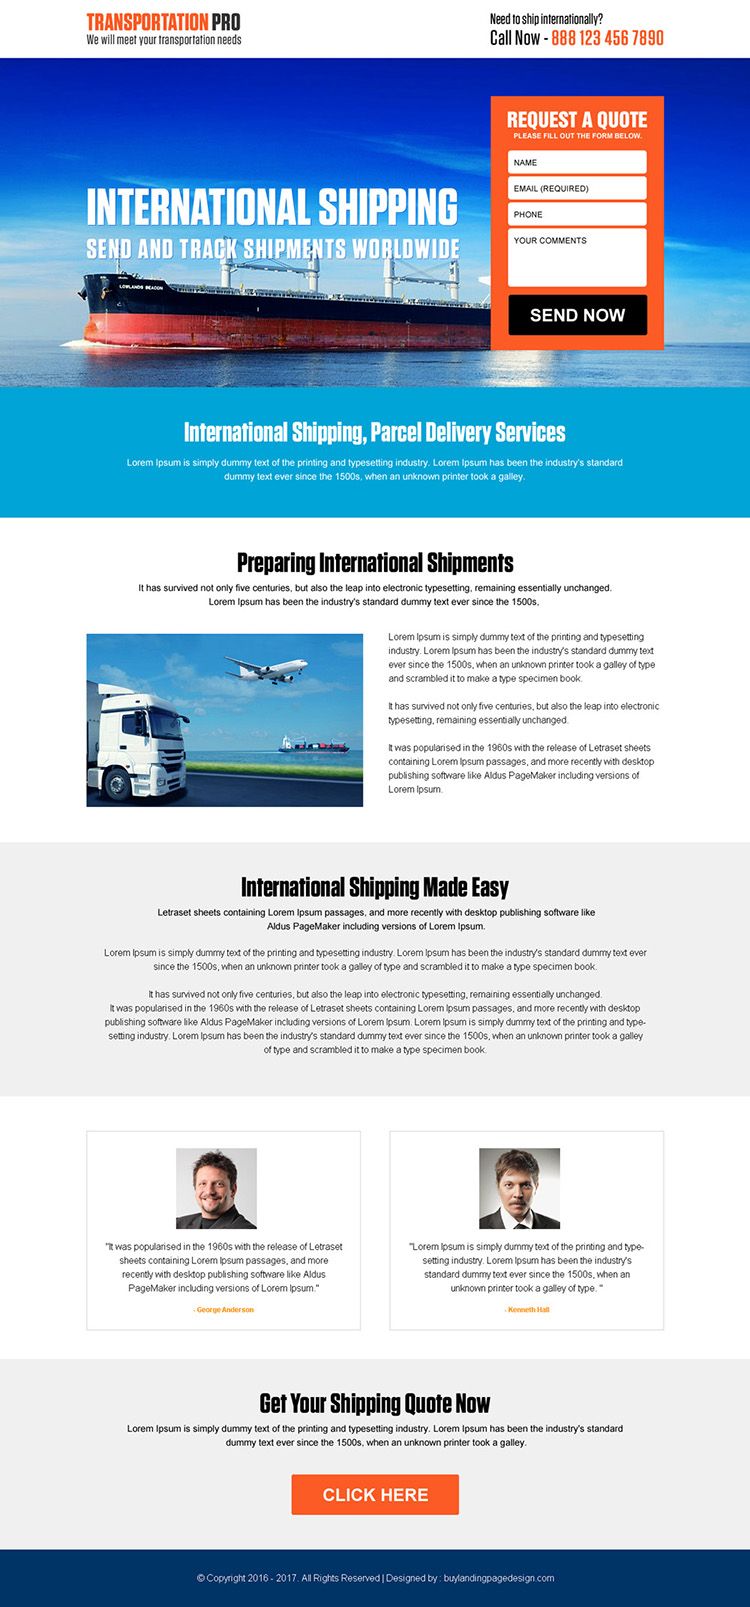 responsive international transportation service landing page